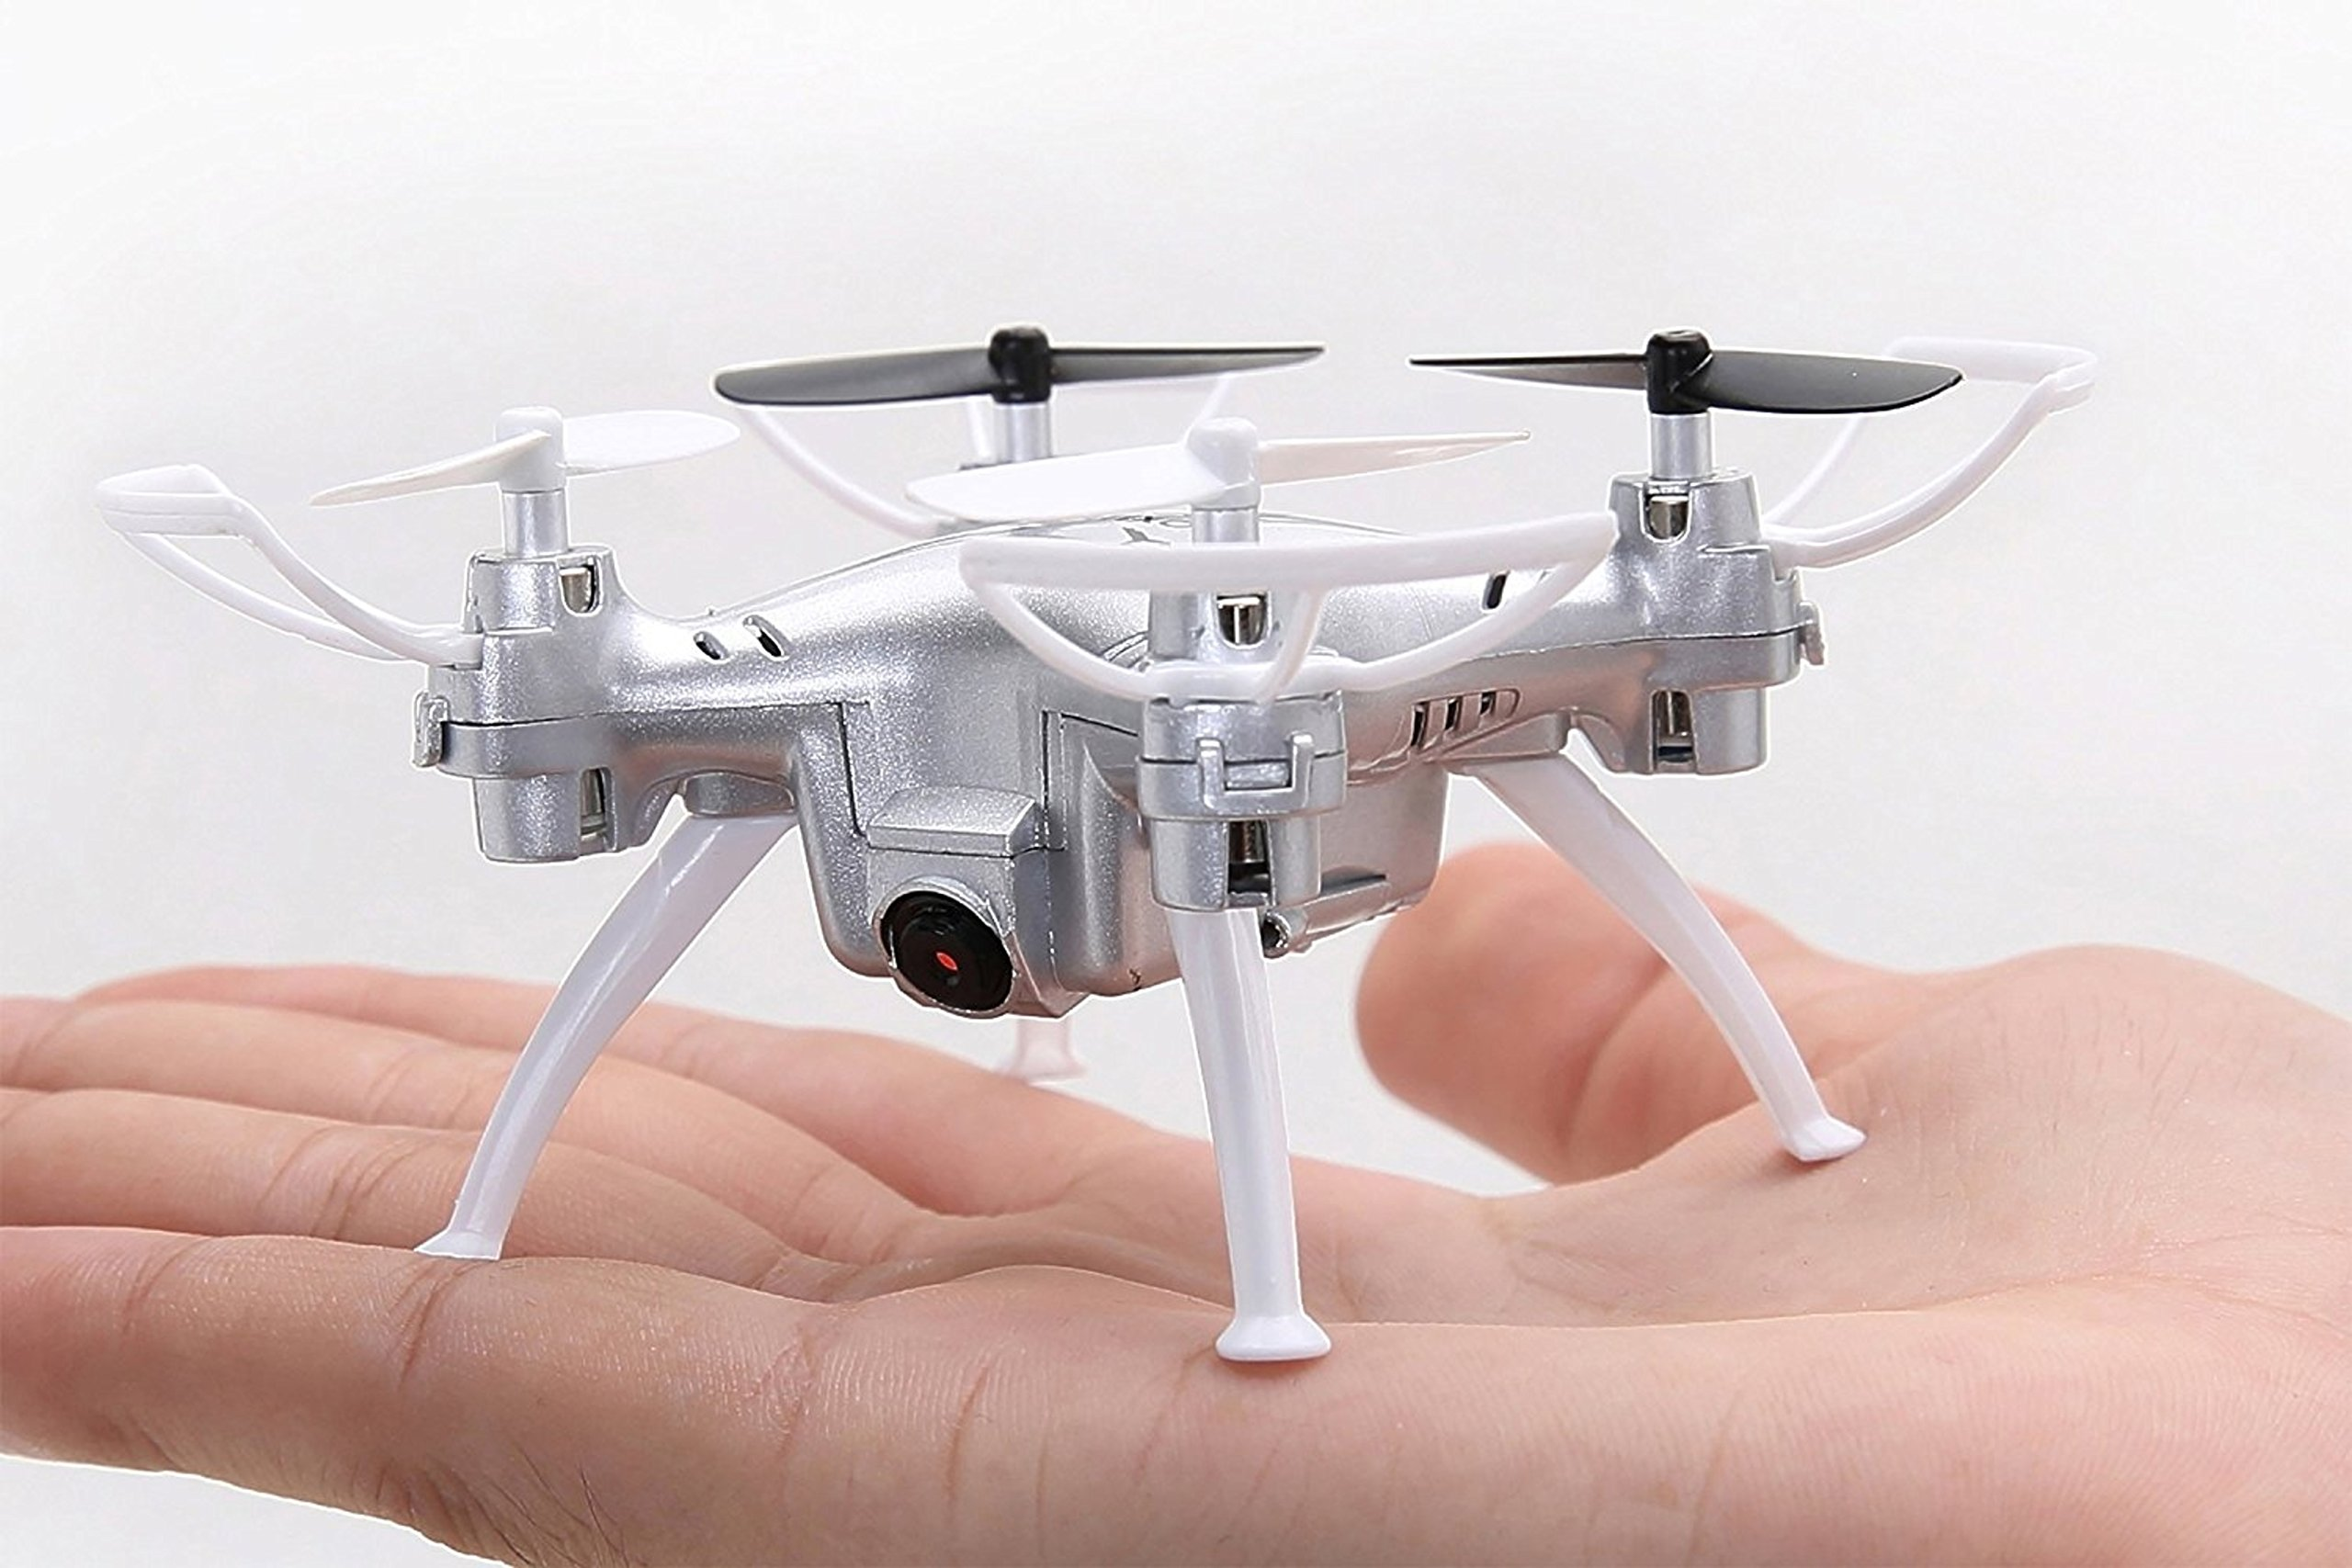 One-Key Return Mini Silver Drone 2.4GHz 4CH 6-Axis Gyro Remote Control Quadcopter by Contixo